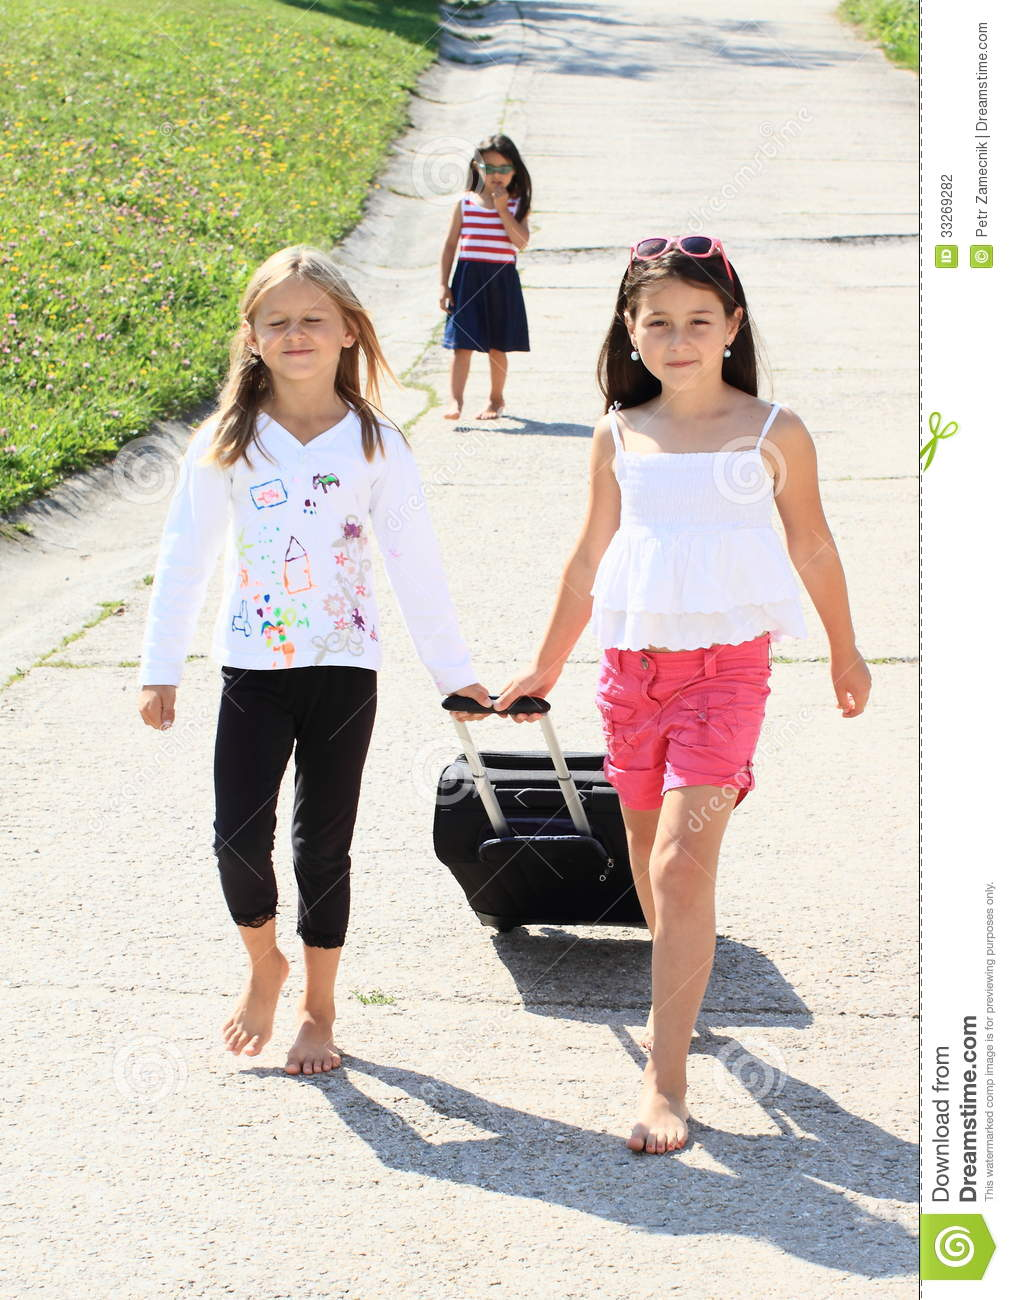 Two Barefoot Girls With Black Chech In Baggage Leaving Their Sad Sister